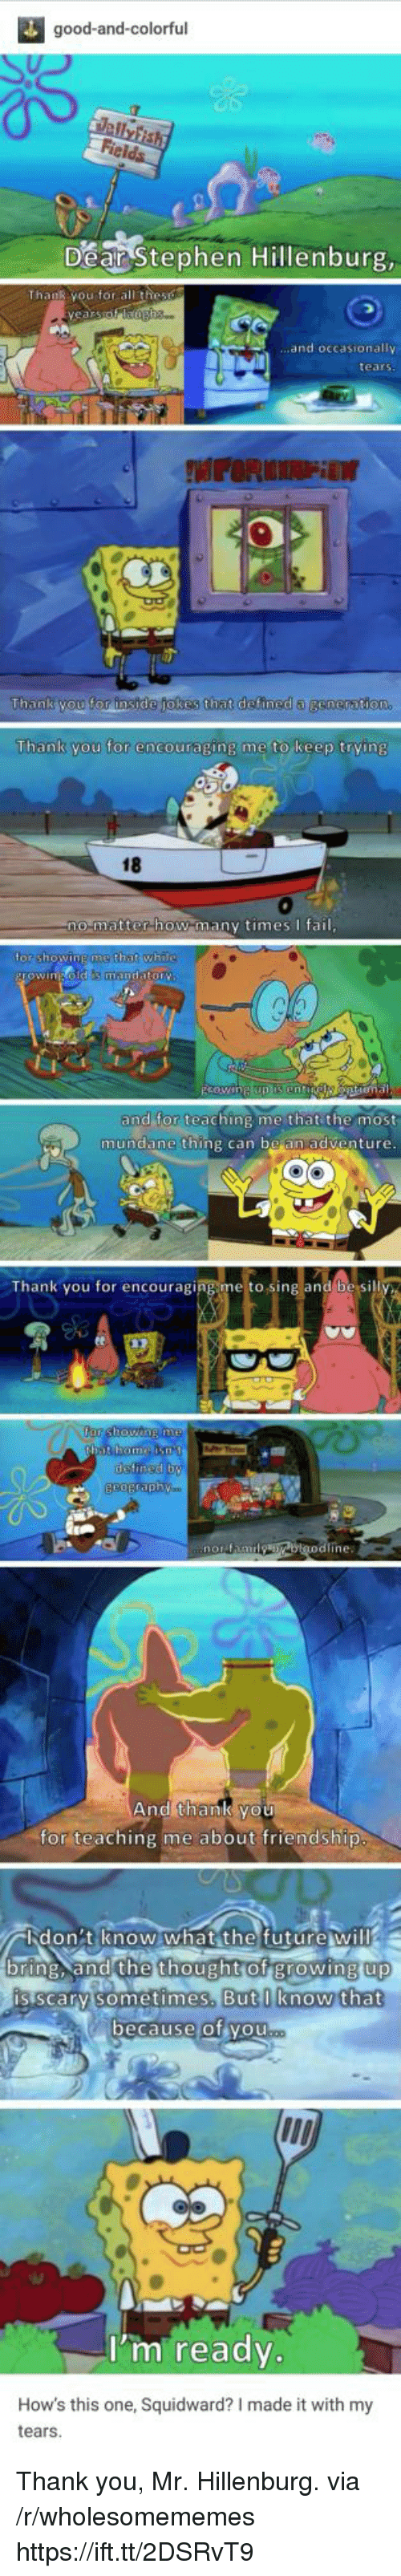 Growing Up, Squidward, and Stephen: good-and-colorful  Dear Stephen Hillenburg  .and occasionally  tears  Thank you for instde jokes that defined a  Thank you for encouraging me to keep trving  18  0  matter how manv timesfai  or shOWINE  that whi  and for teaching me that the most  mundane thing can be an adventure  Thank you for encouraging me to sing and be si  ine:  And thank you  for teaching me about friendship  バlid on : tien0w.what the futurew ill  bring. and the thought of growing up  up  is scarv sometimes.  But I know that  ecause of vou  I'm ready.  How's this one, Squidward? I made it with my  tears Thank you, Mr. Hillenburg. via /r/wholesomememes https://ift.tt/2DSRvT9